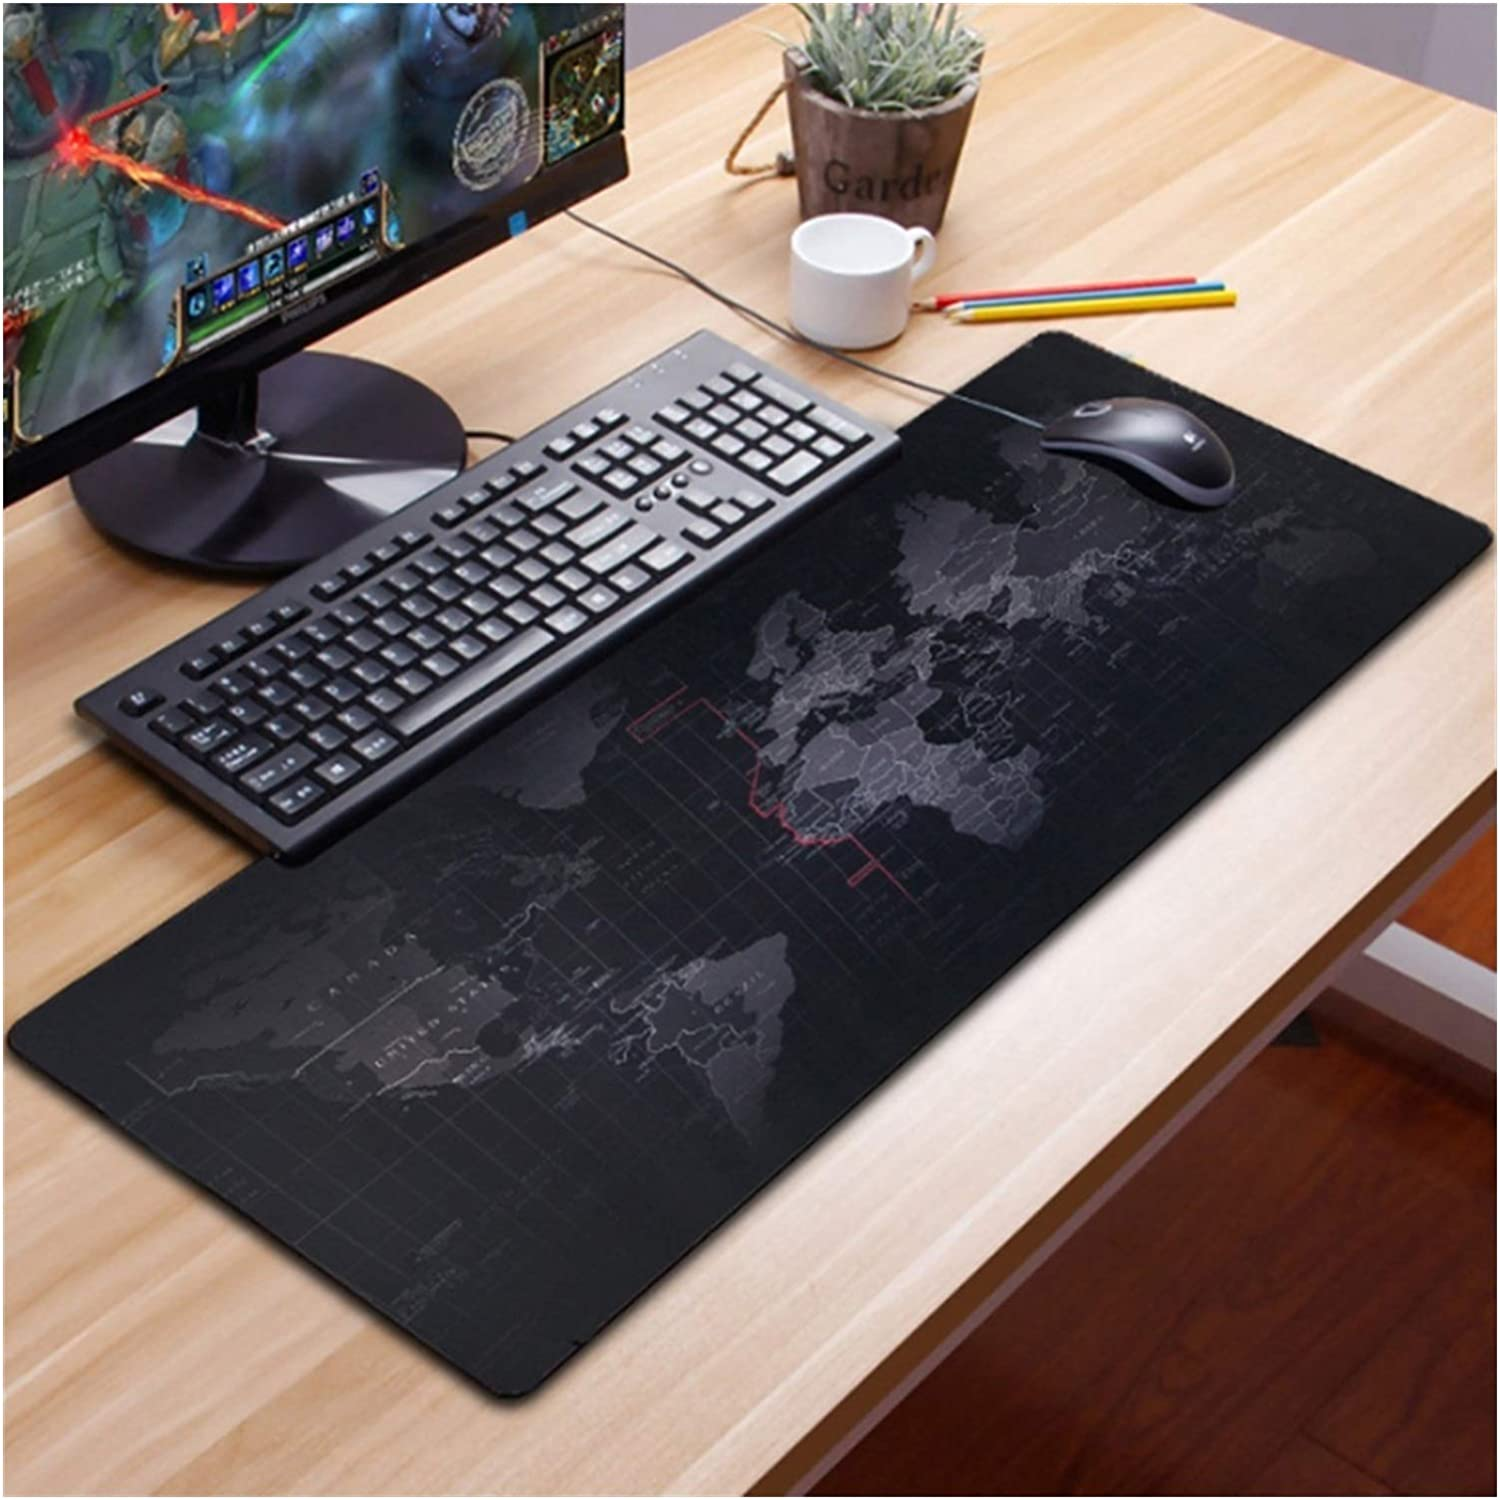 QWXZ Gaming Mouse pad Anti-Slip World Pattern Large Gaming Mouse Pad Keyboard Mat Desk Computer Accessory Fashion Office Computer Table Mouse Mat Large Mouse pad (Size : 70x30x0.2)